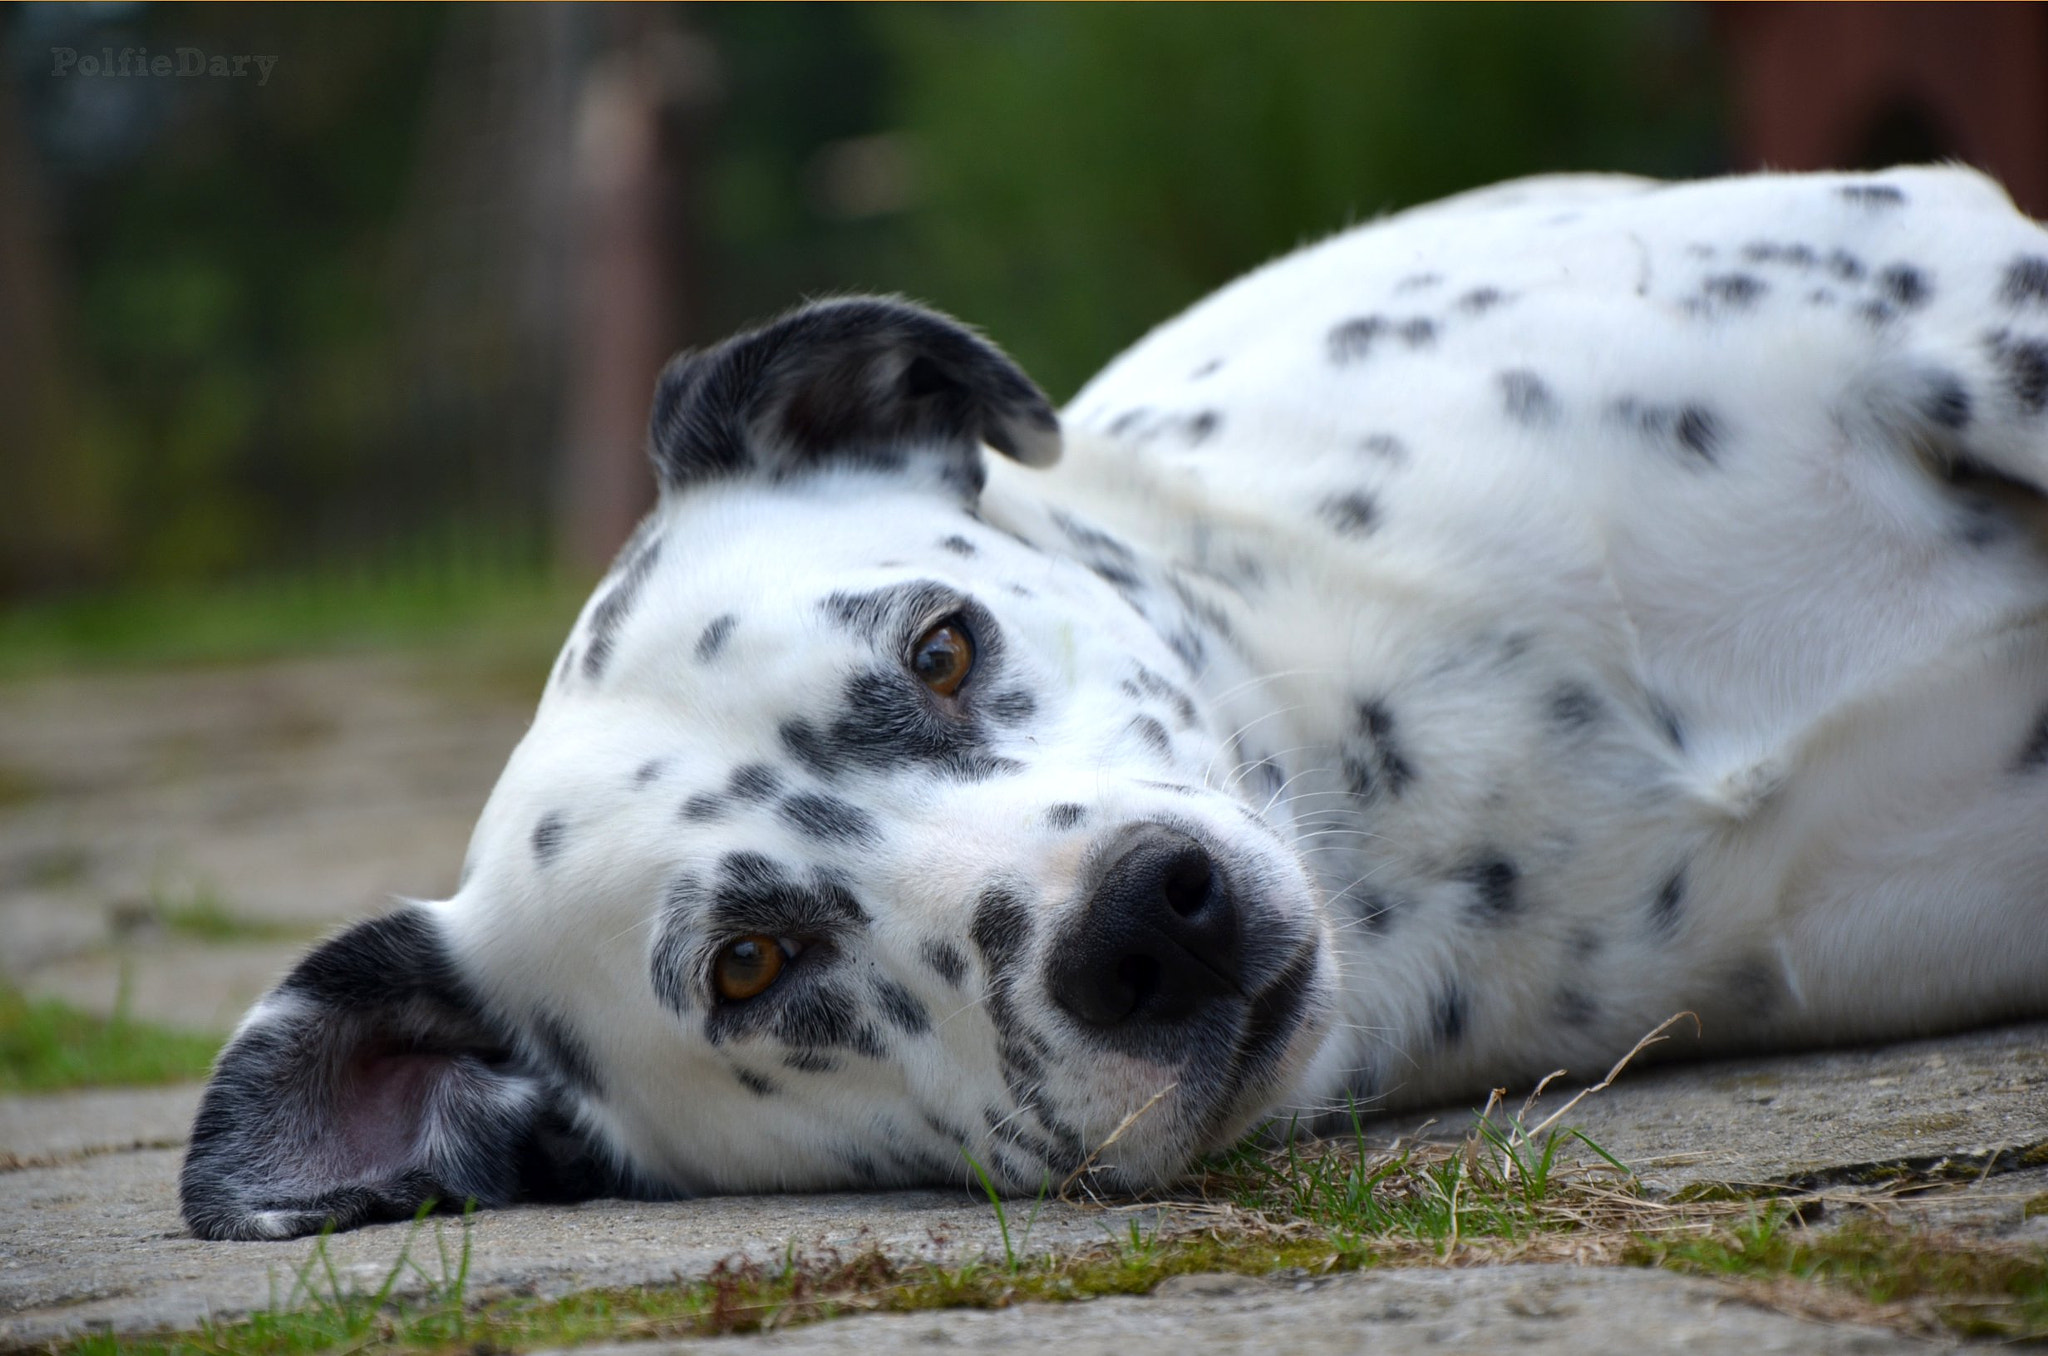 Photograph Tired dog by Anne B on 500px